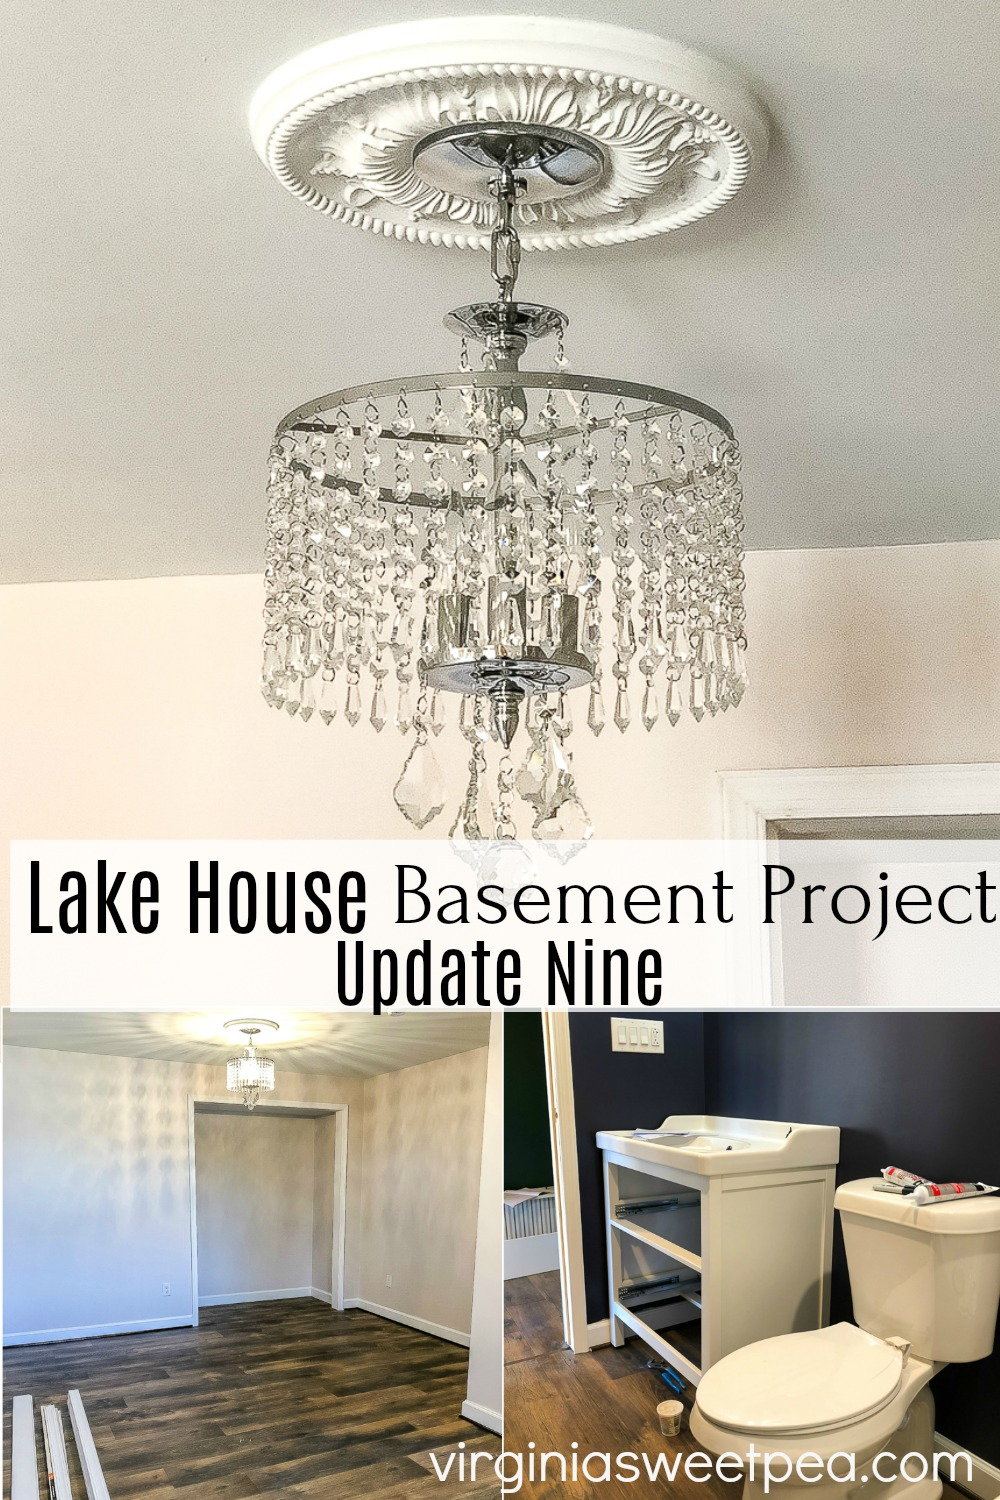 Lake House Basement Project Update Nine - An unfinished basement is being transformed into a bedroom, family room, and bathroom.  #finishingabasement #basement #basementupdate #smithmountainlake #virginiasweetpea via @spaula